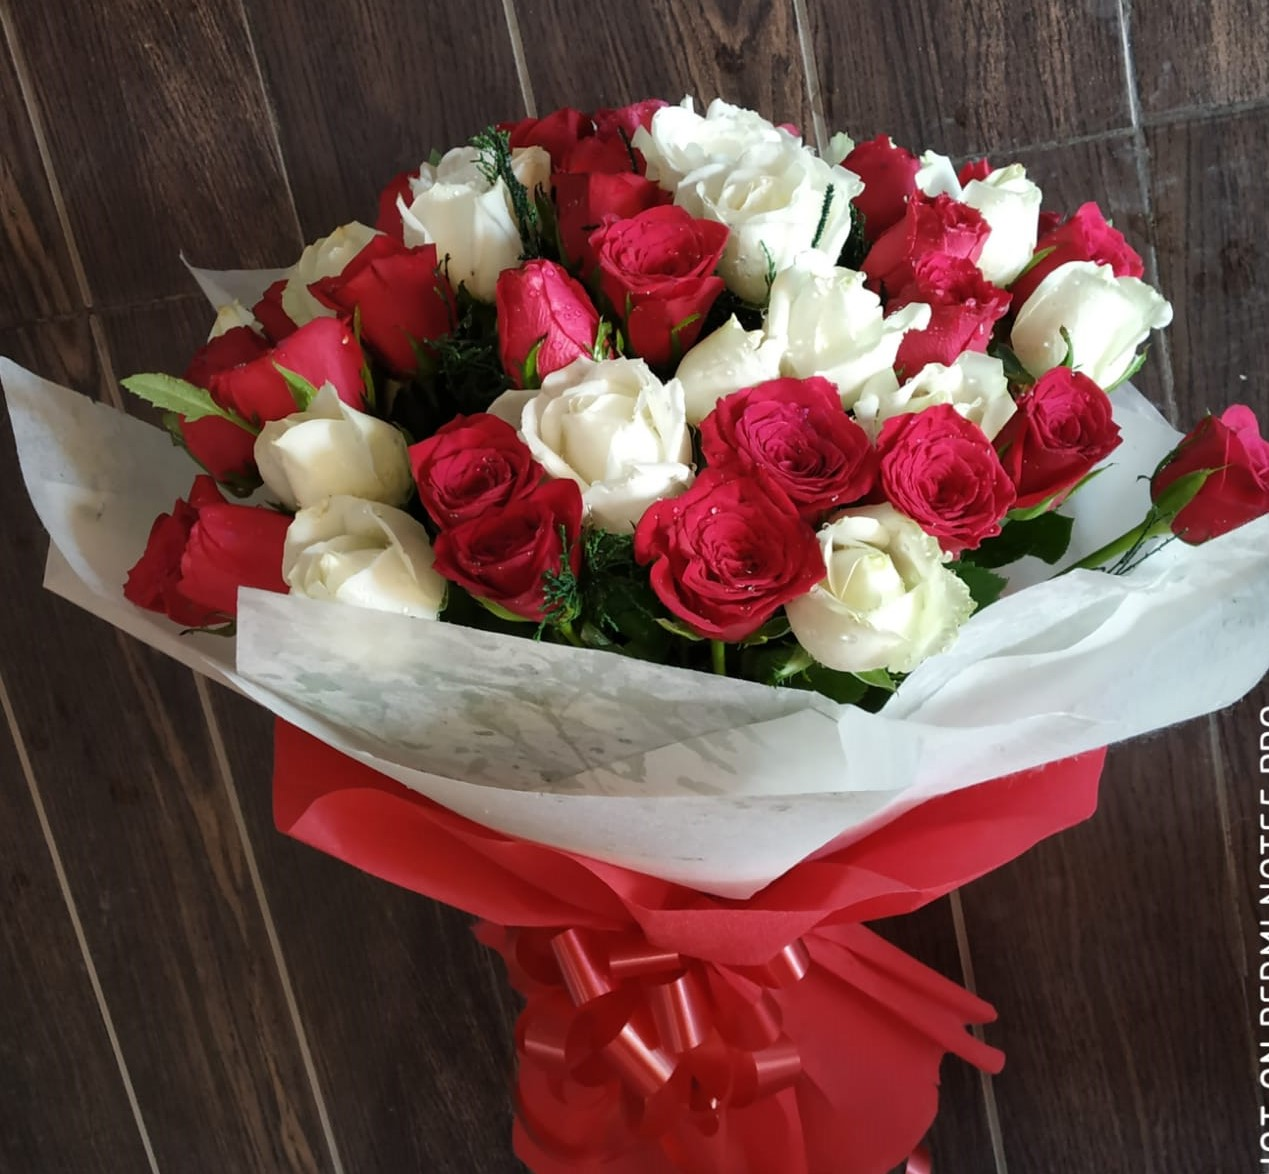 send flower Lodi Colony DelhiRed & White Roses in Duble Layer Packing